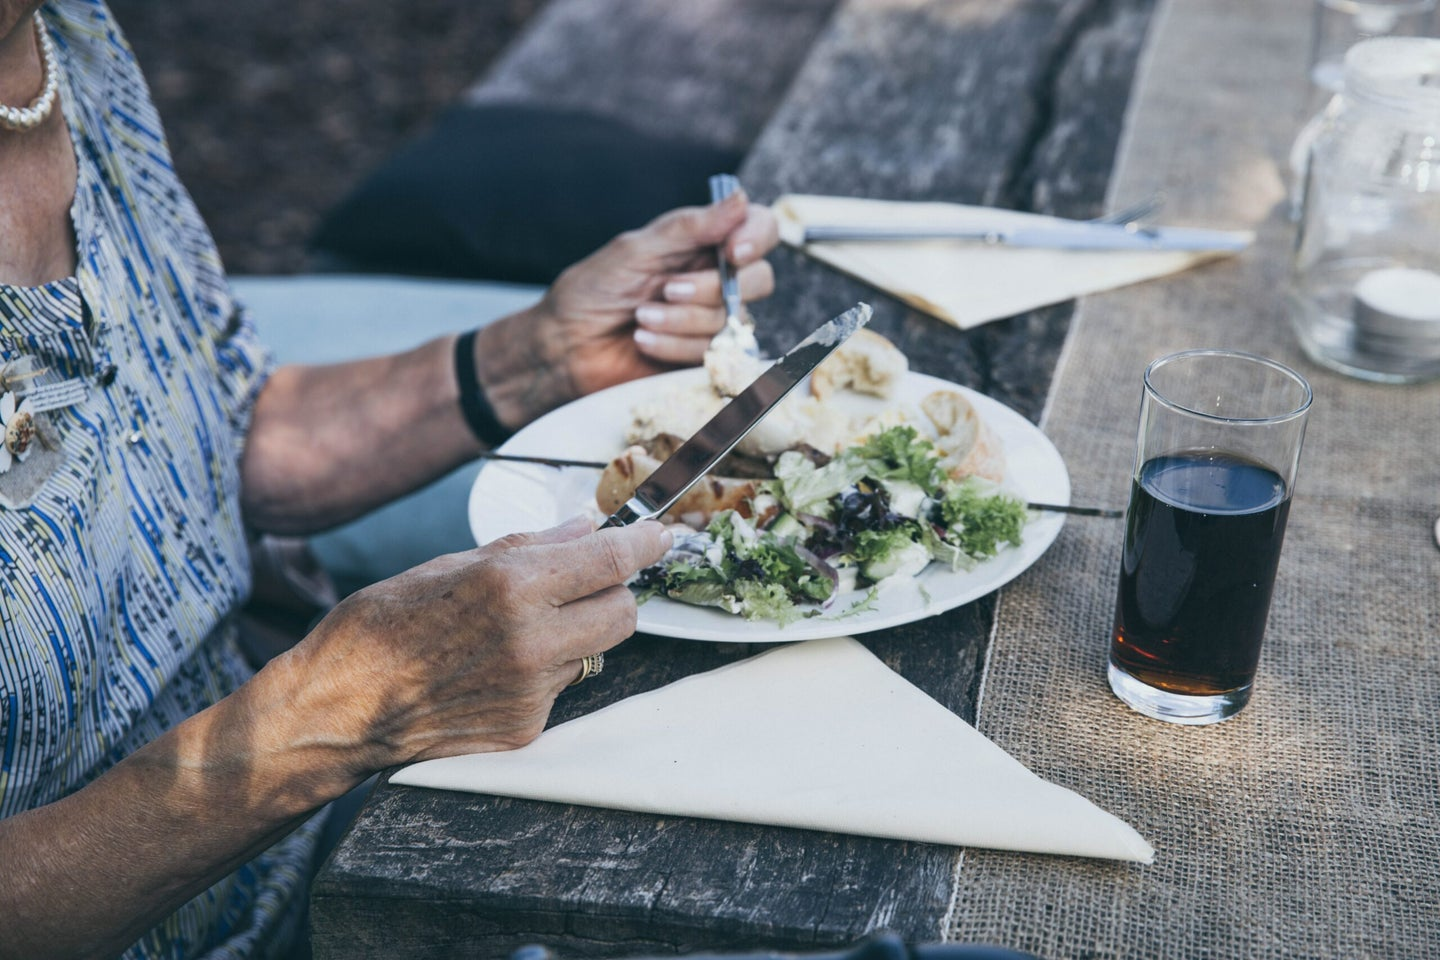 person eating off a white plate at a picnic table with a brown runner and white cloth napkins